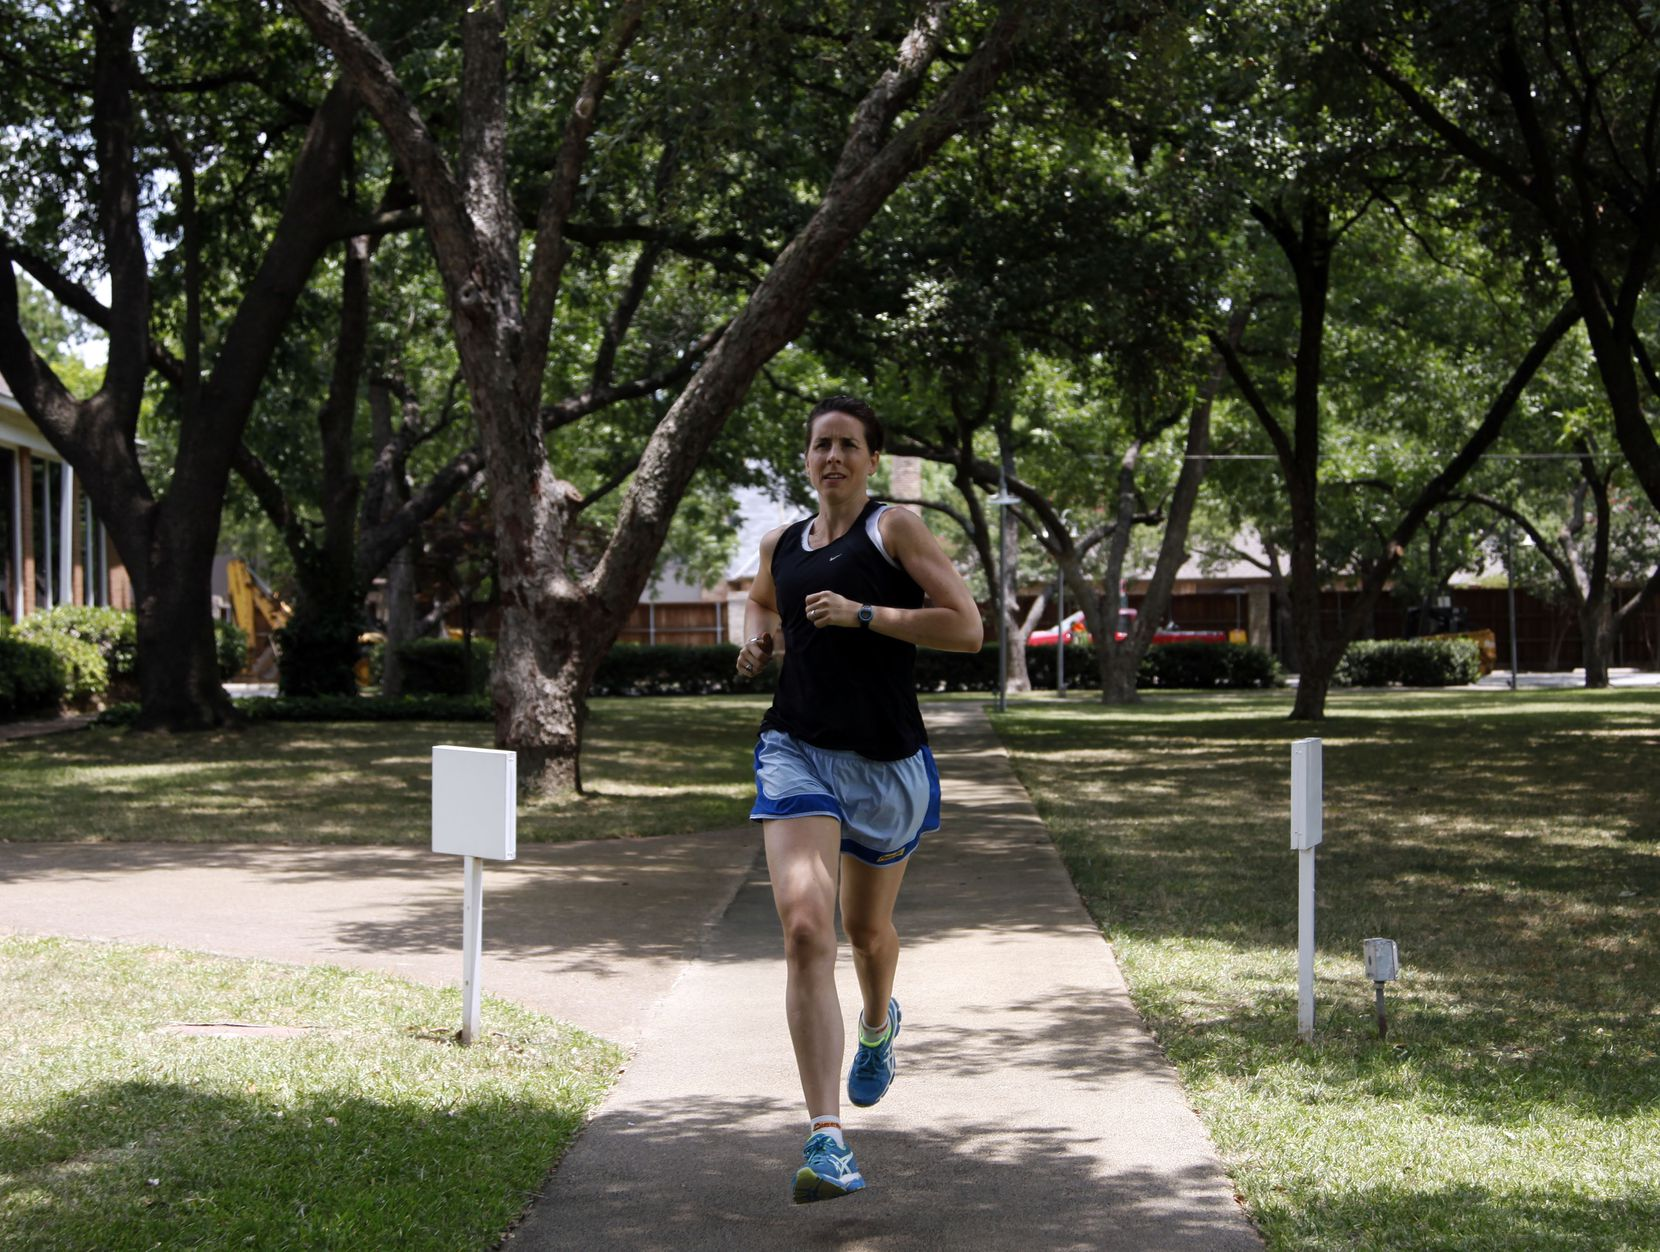 Dr. Riva Rahl, preventive medicine physician at Cooper Clinic Platinum, goes for a run. She explains that sweating helps our bodies cool down.